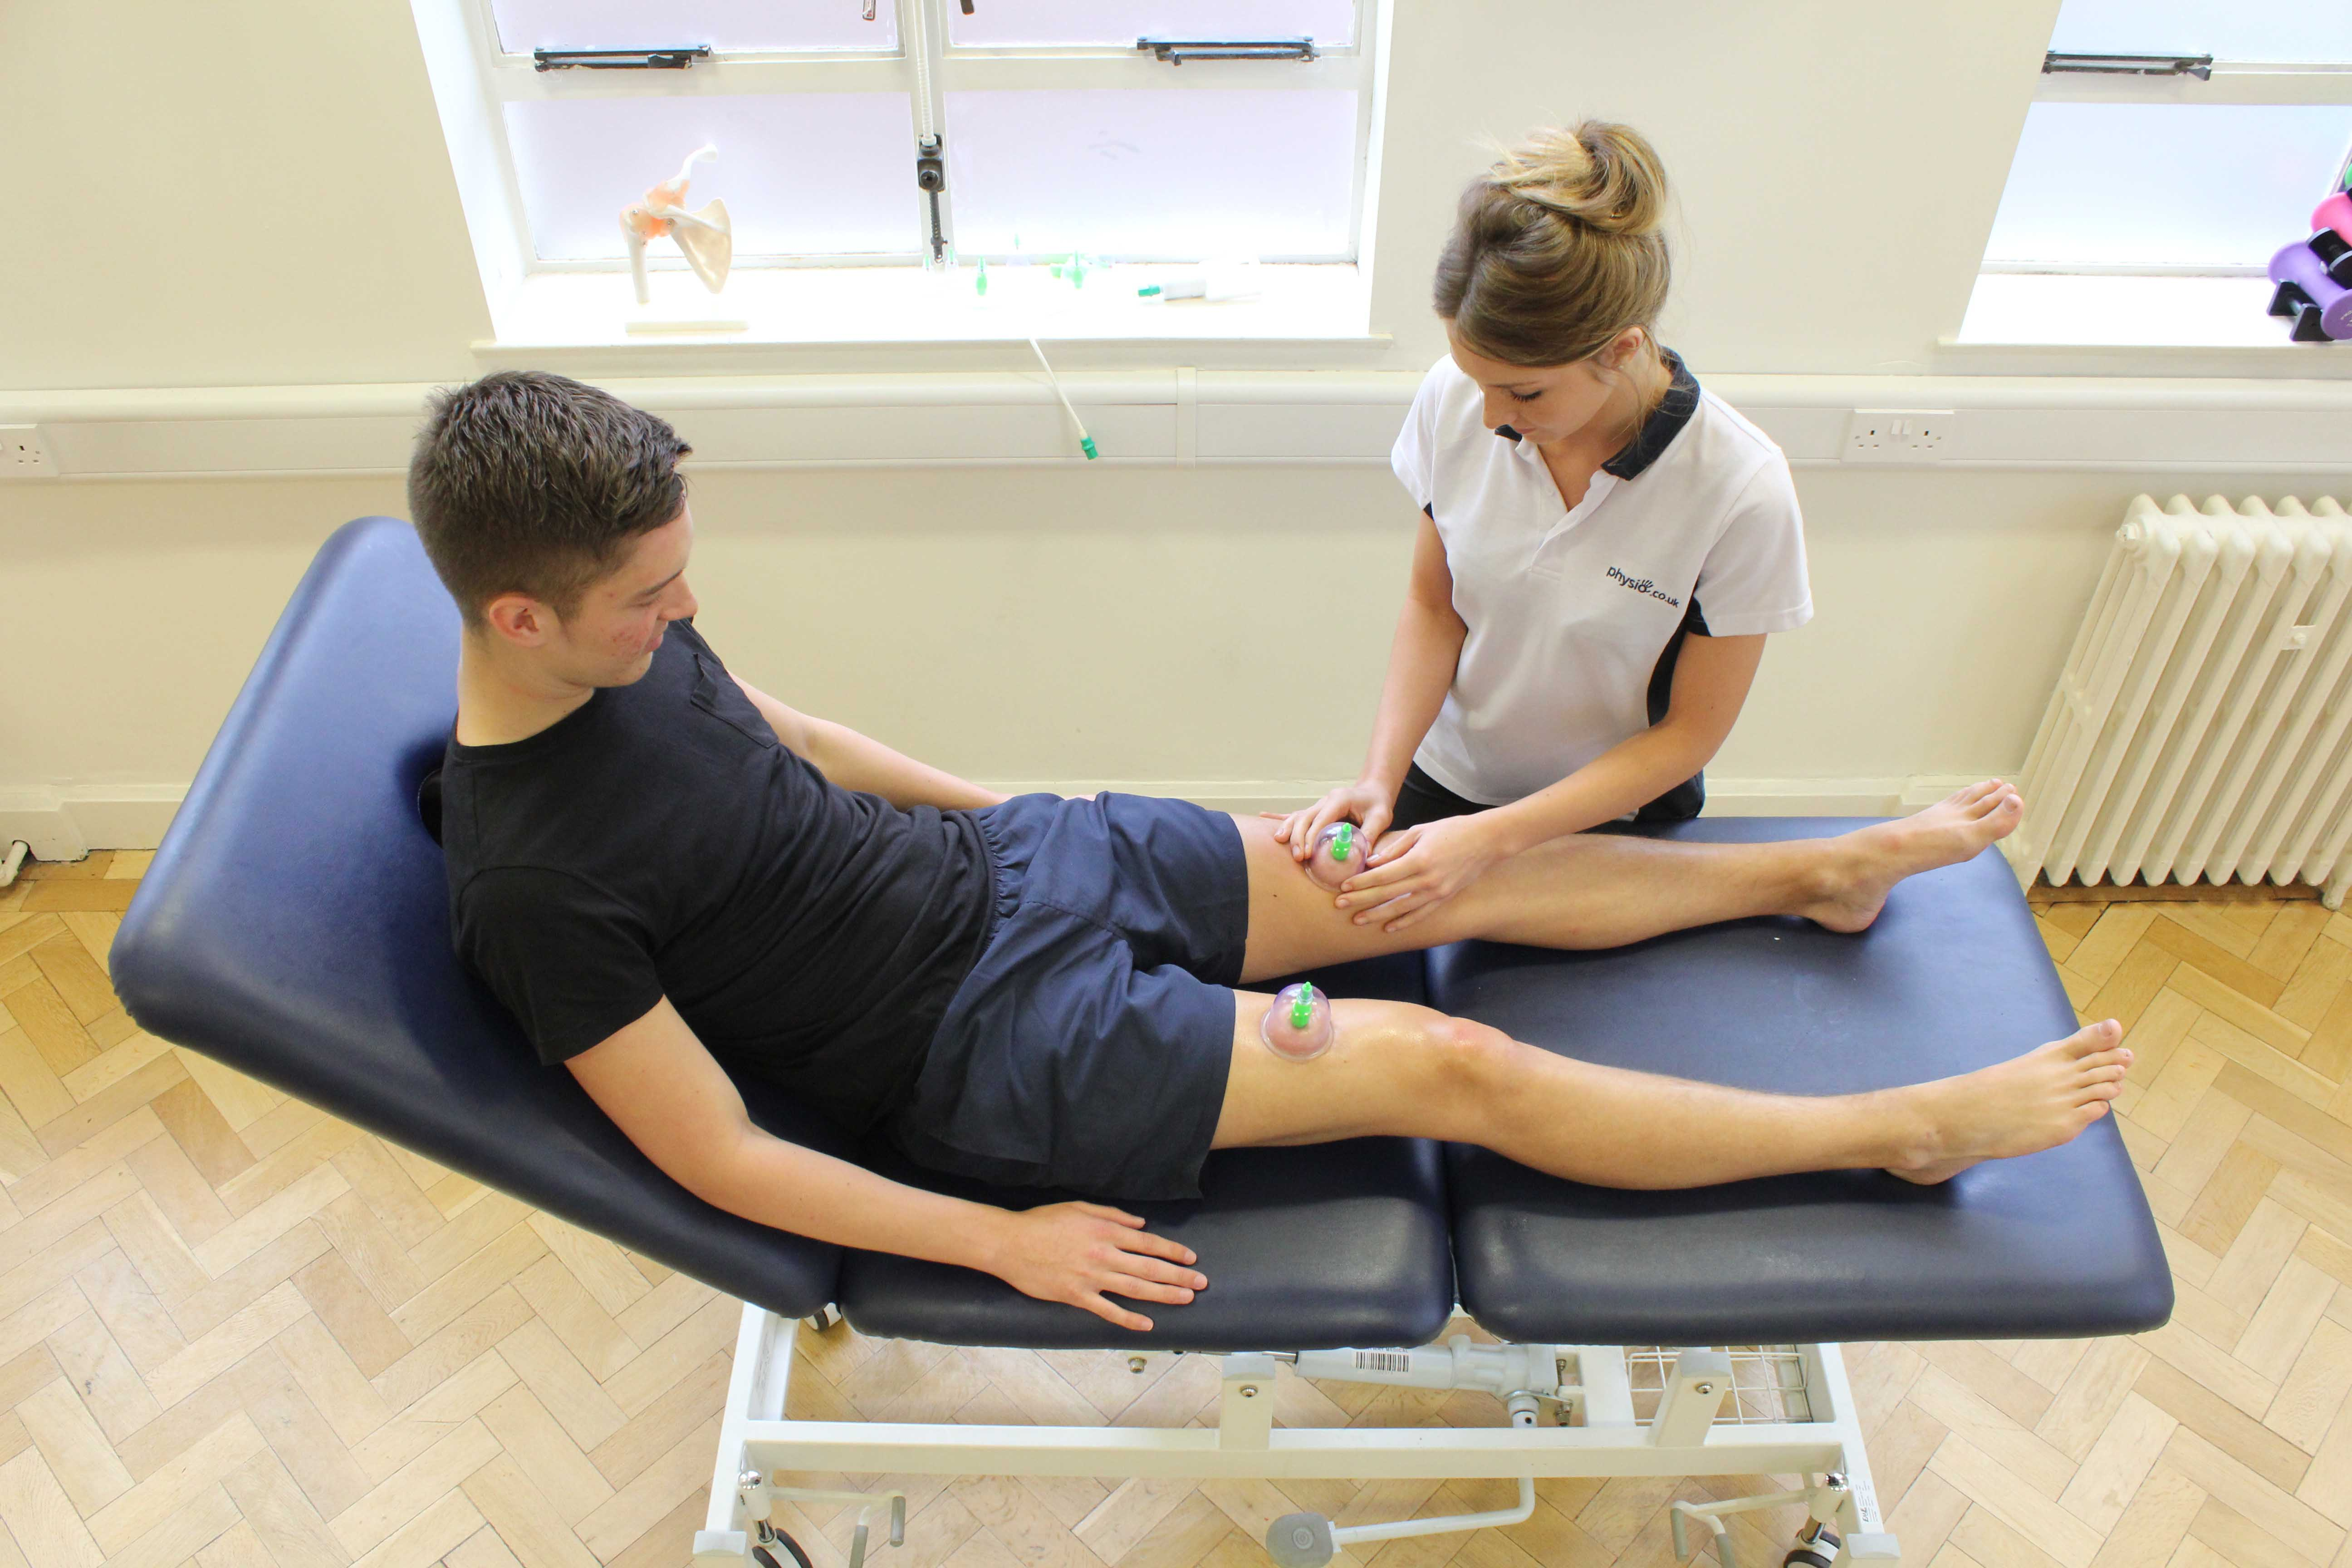 Cupping massage technique applied to the quadricep muscles by specialist therapist